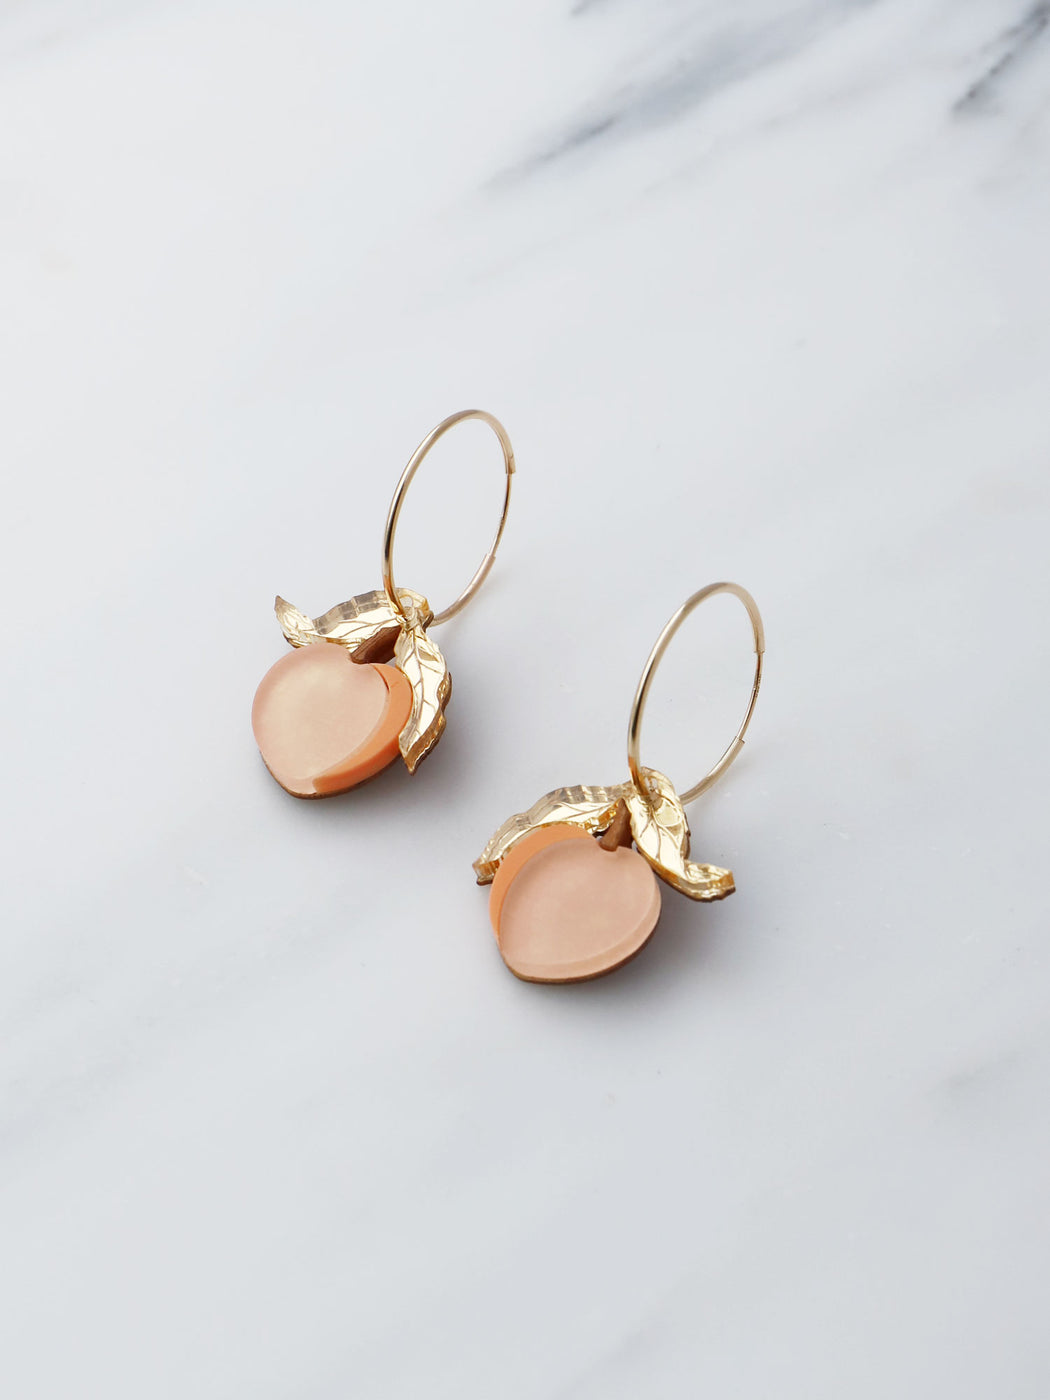 Peach Hoops. Statement jewellery, handmade in the U.K. by Wolf & Moon.r